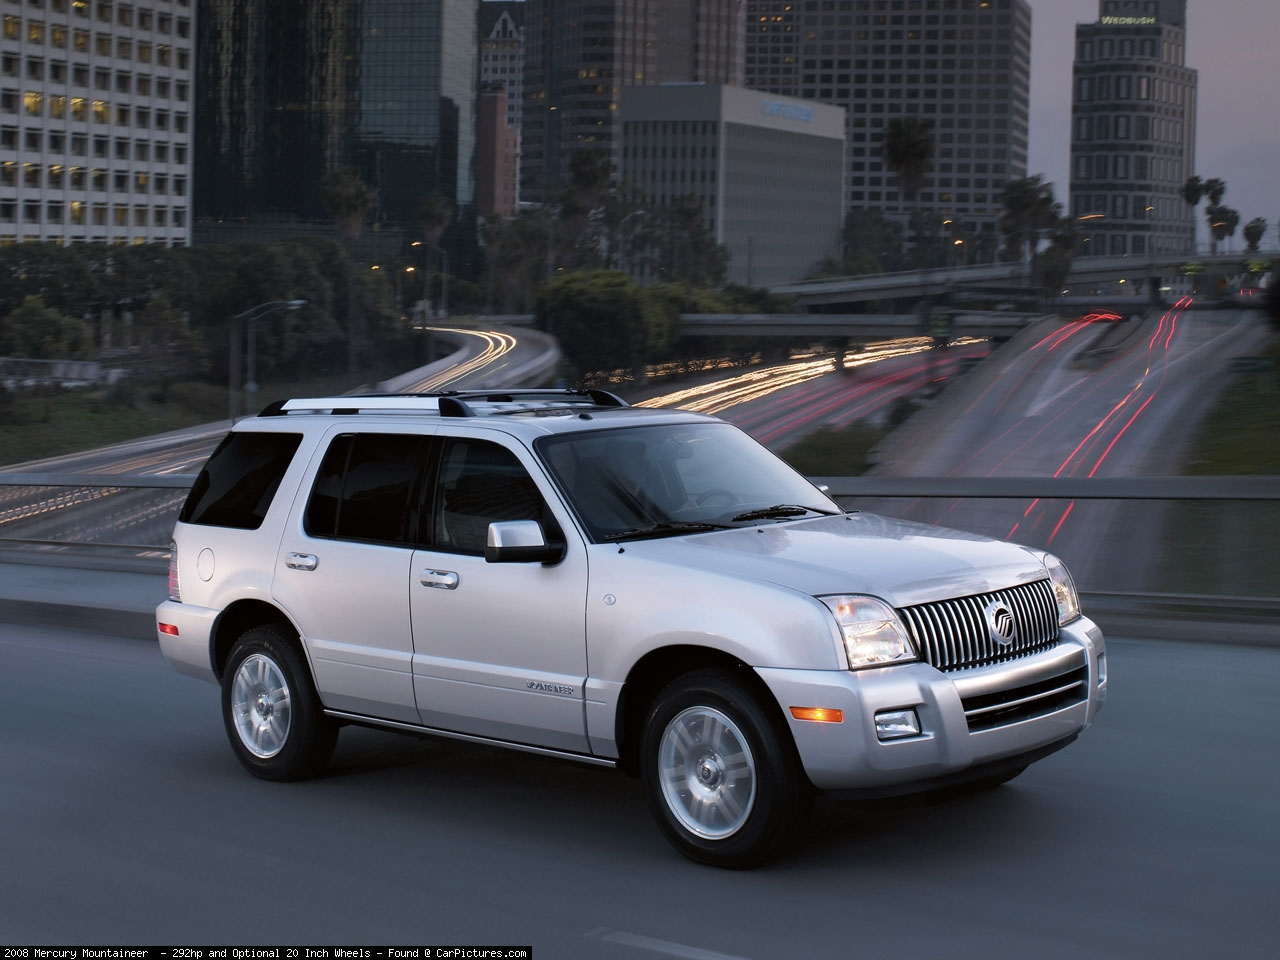 Mercury Mountaineer photo 46047